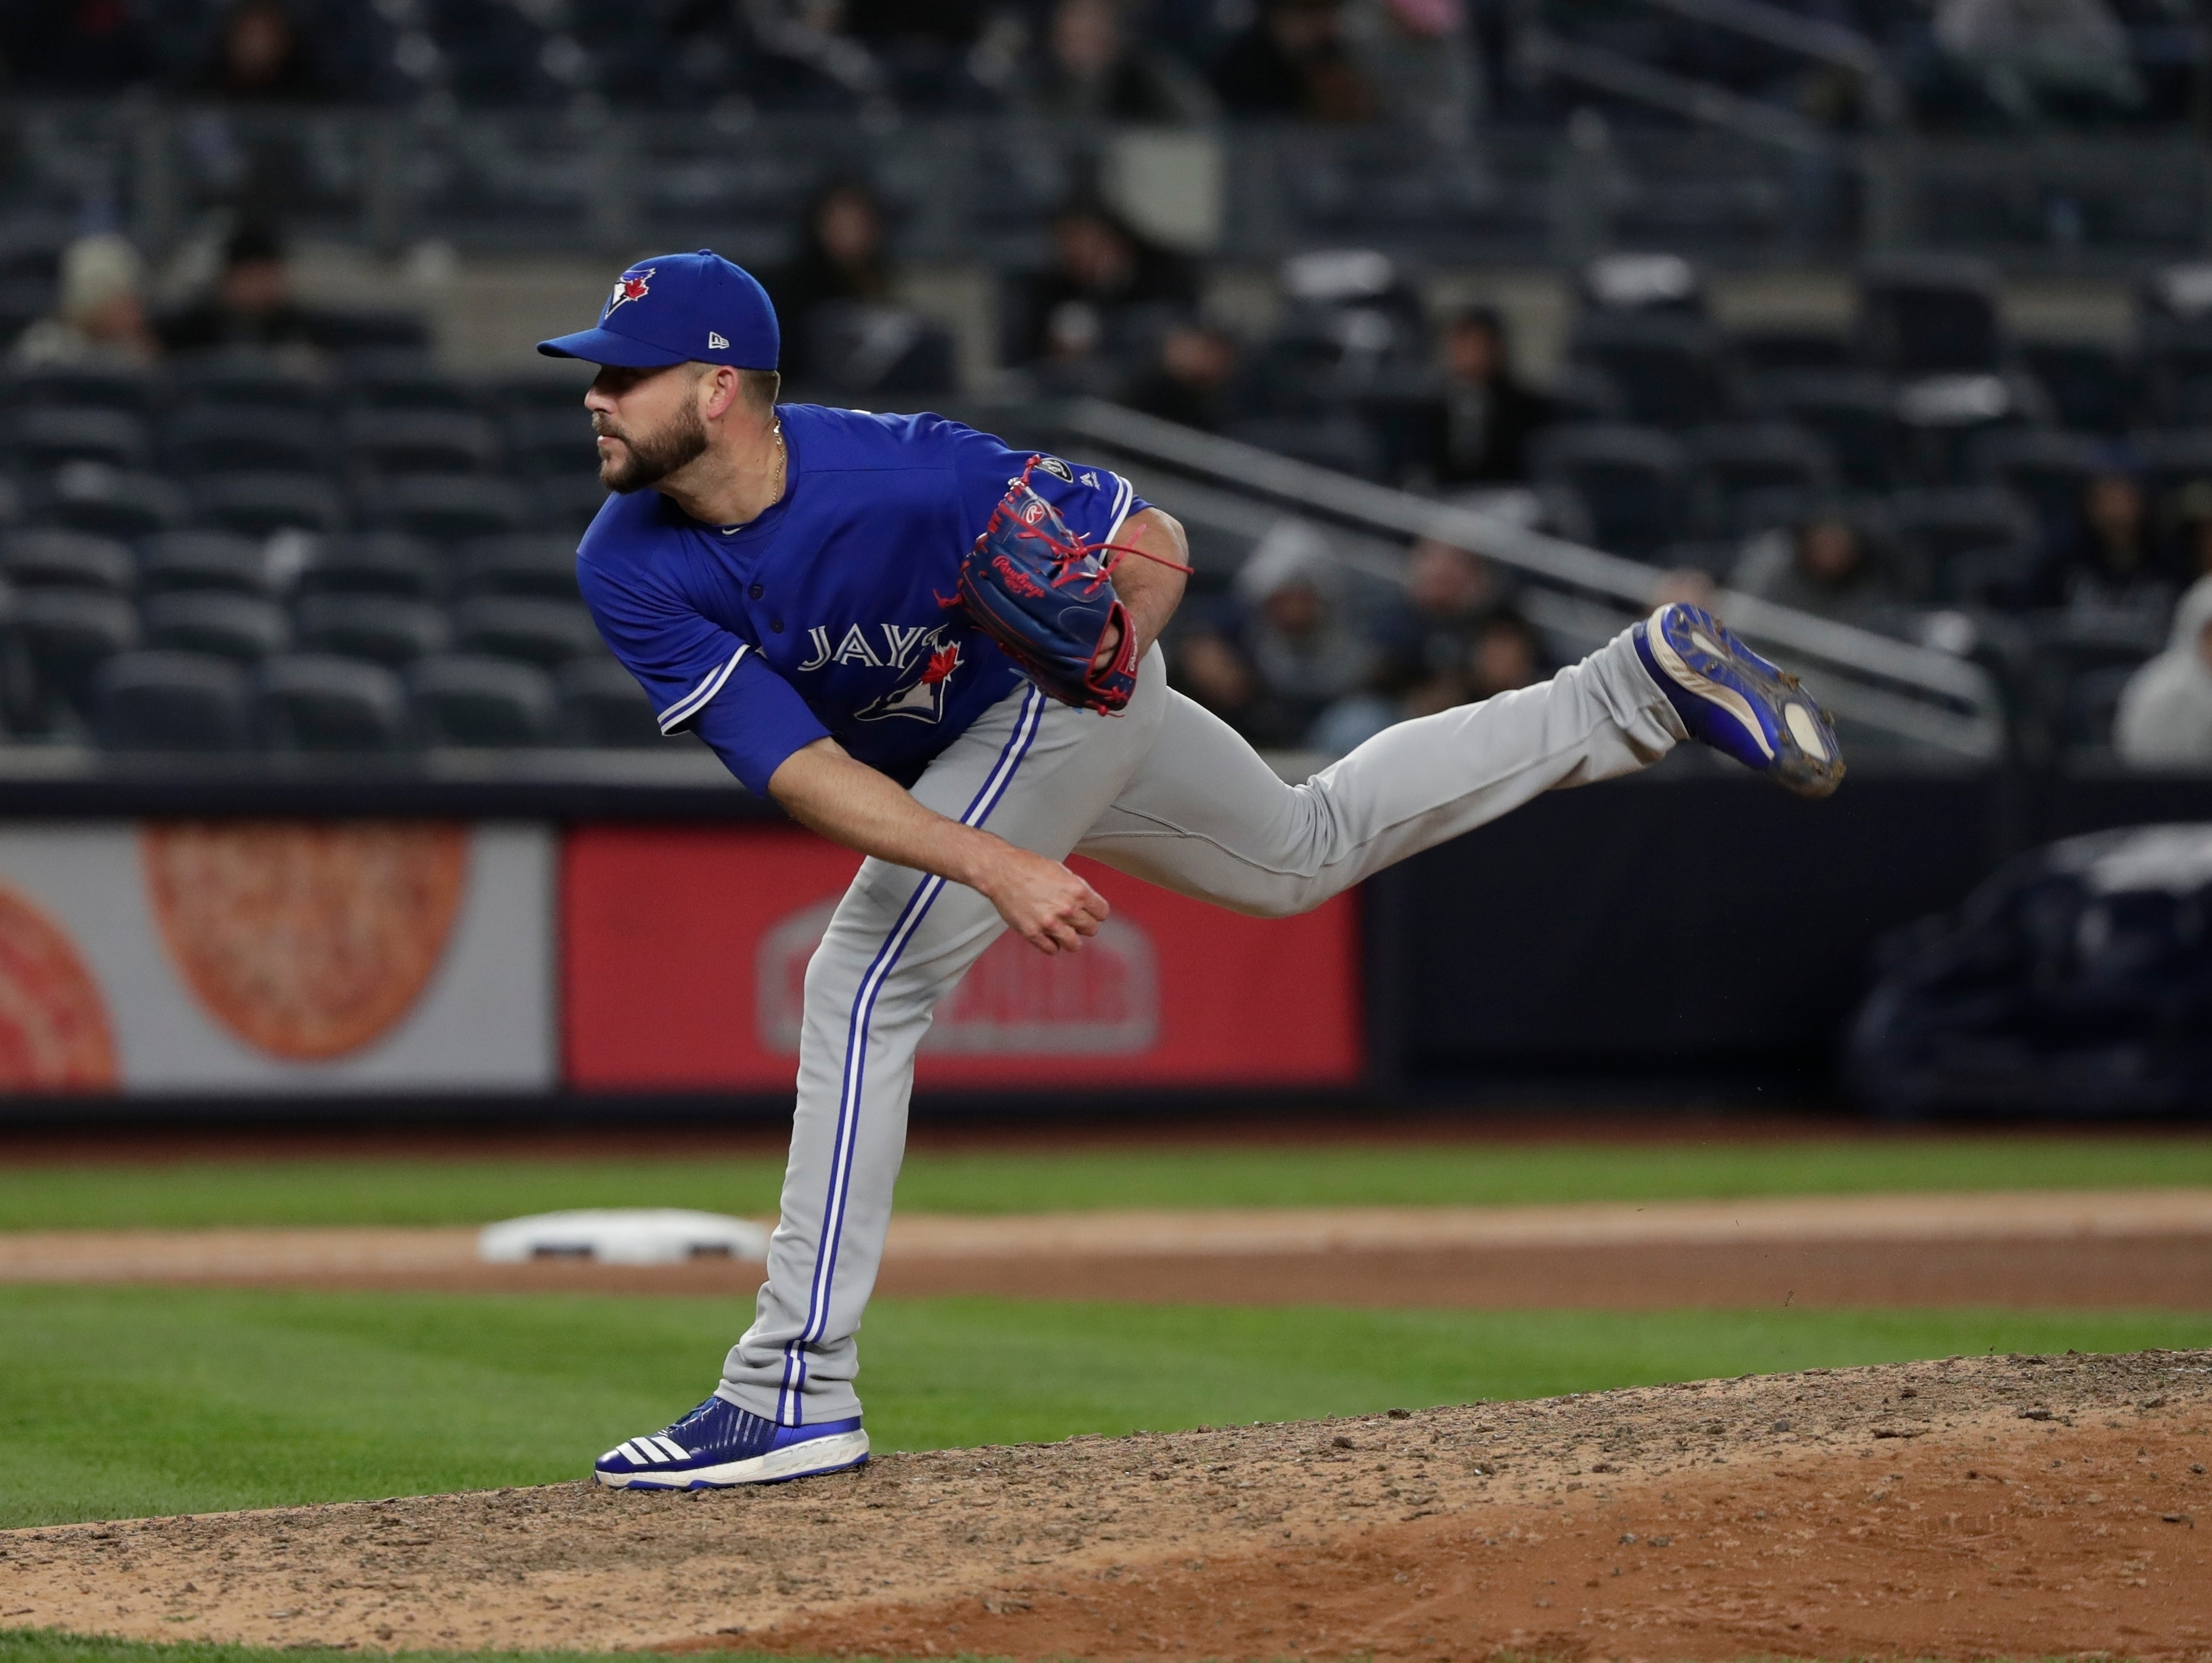 Reliever Ryan Tepera goes to arbitration with Blue Jays